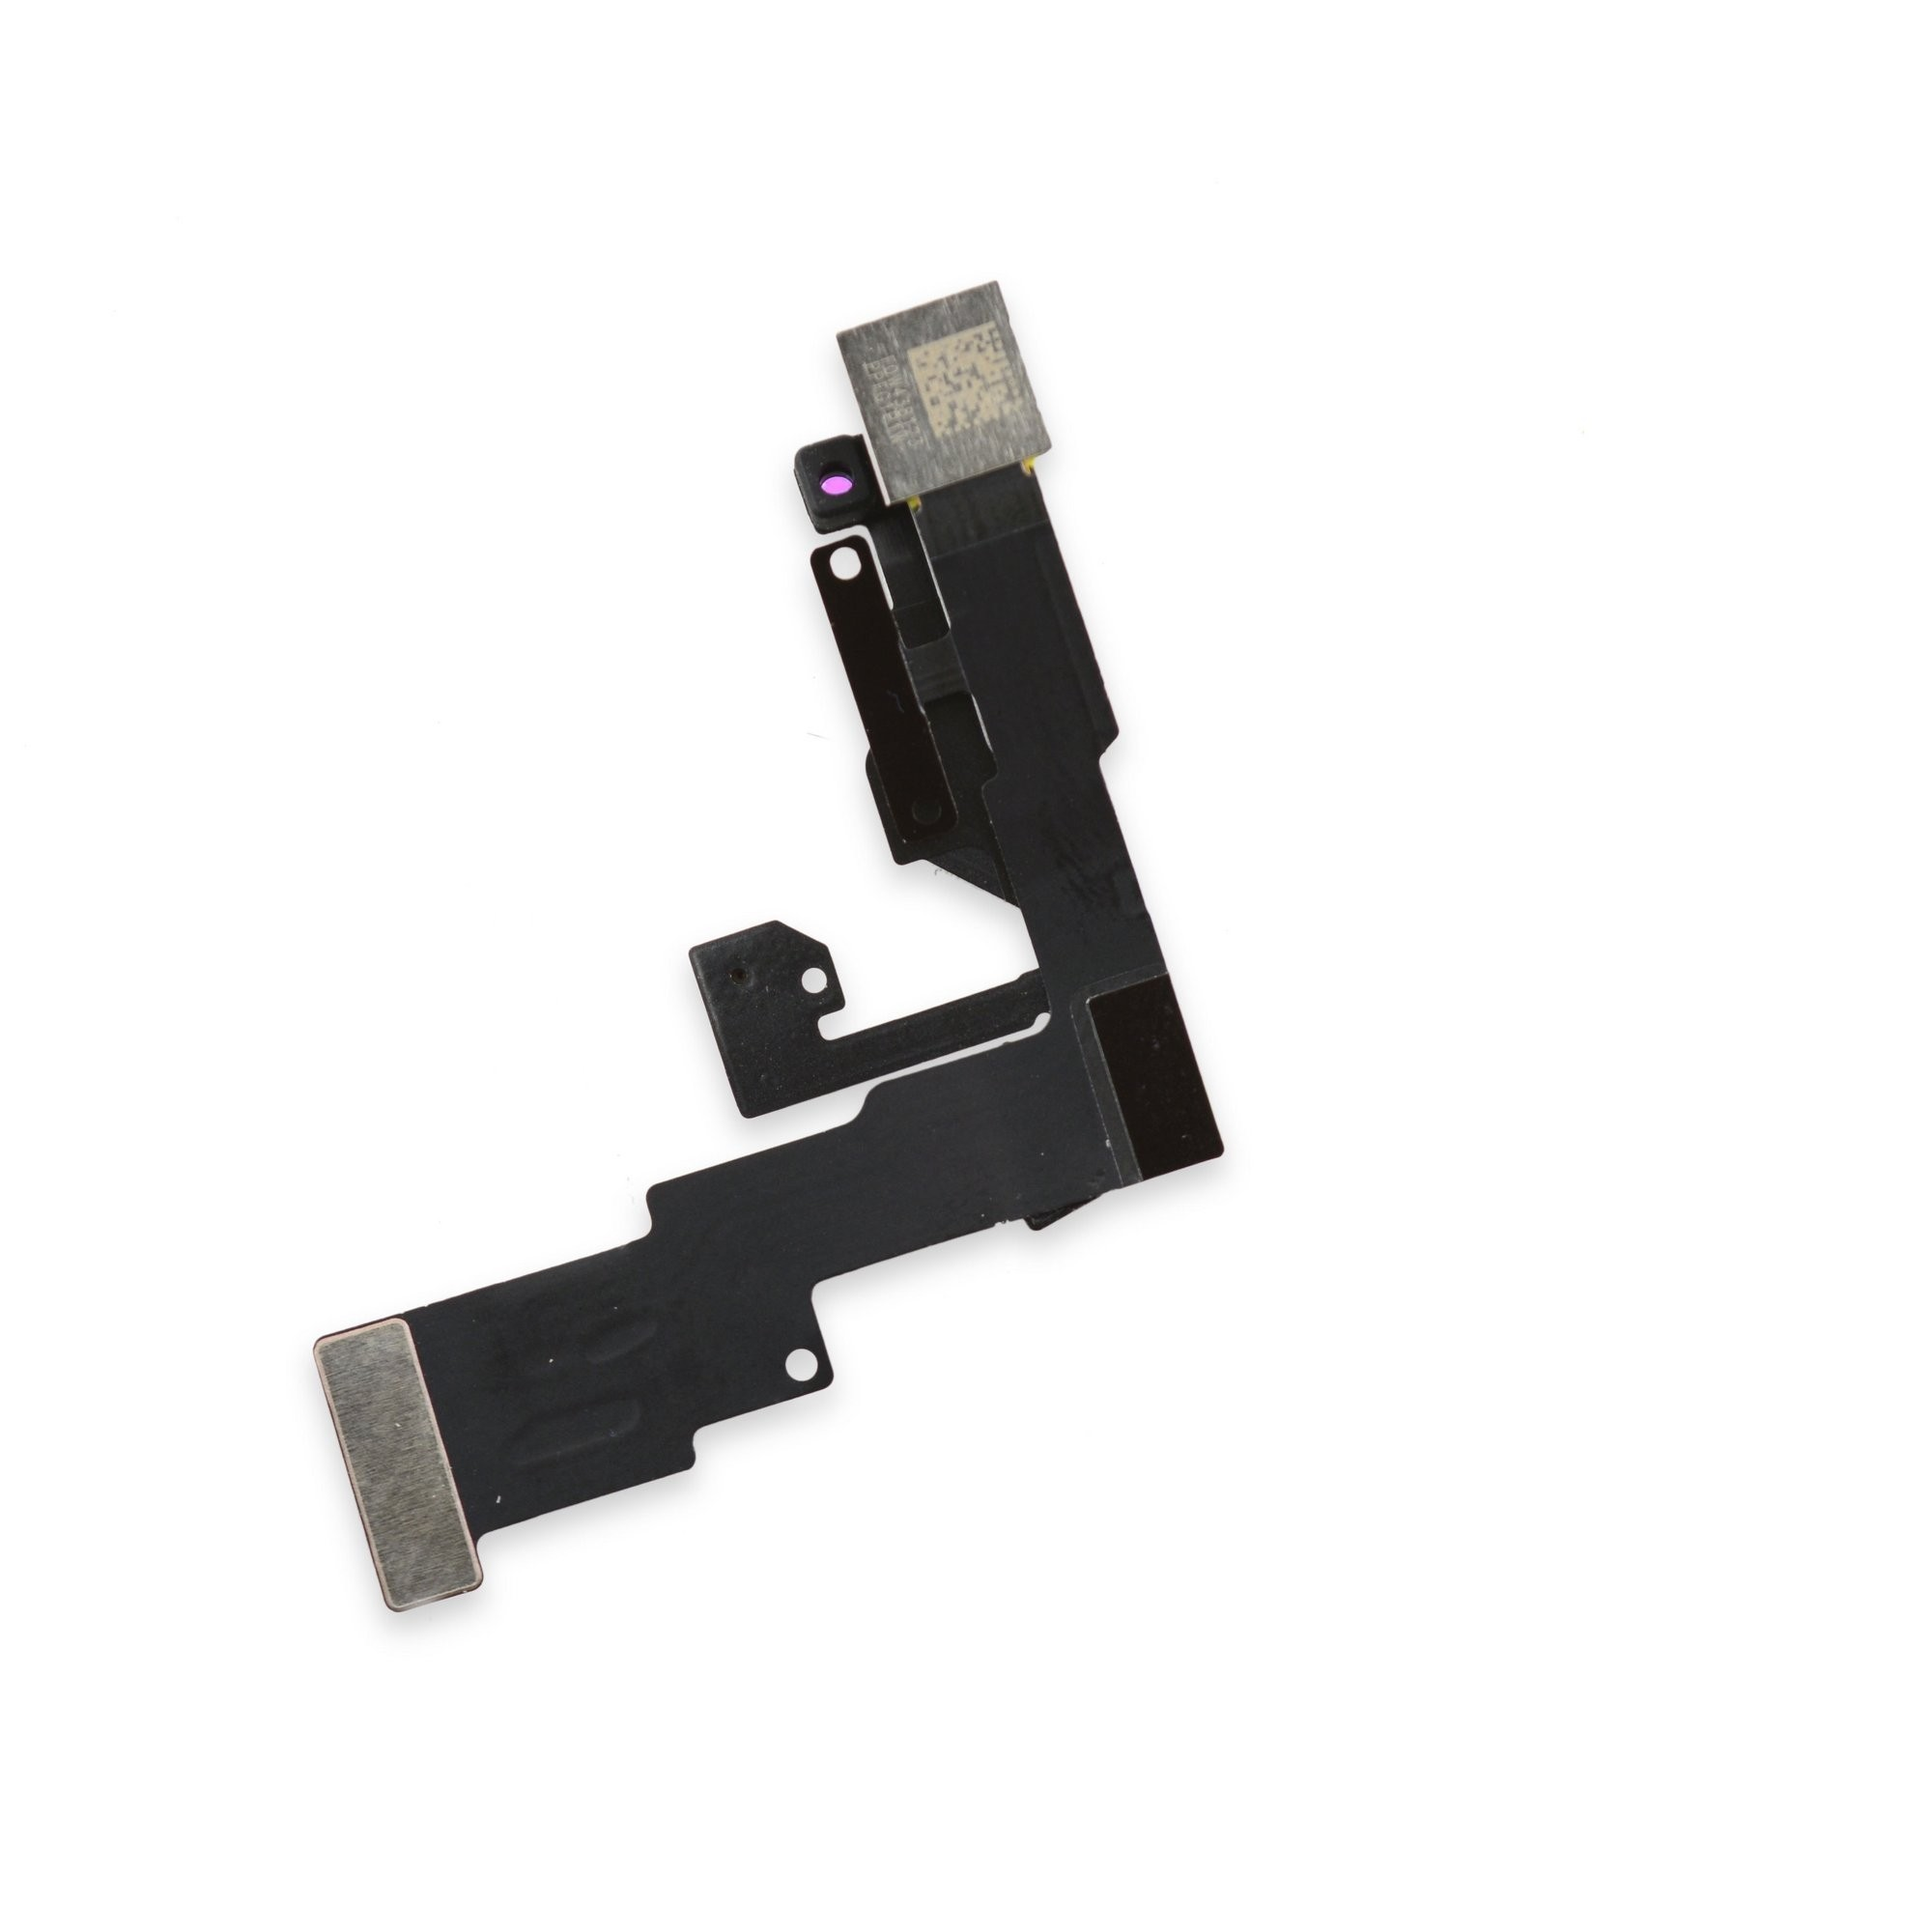 iPhone 6 Front Camera and Sensor Cable, IF268-008-1